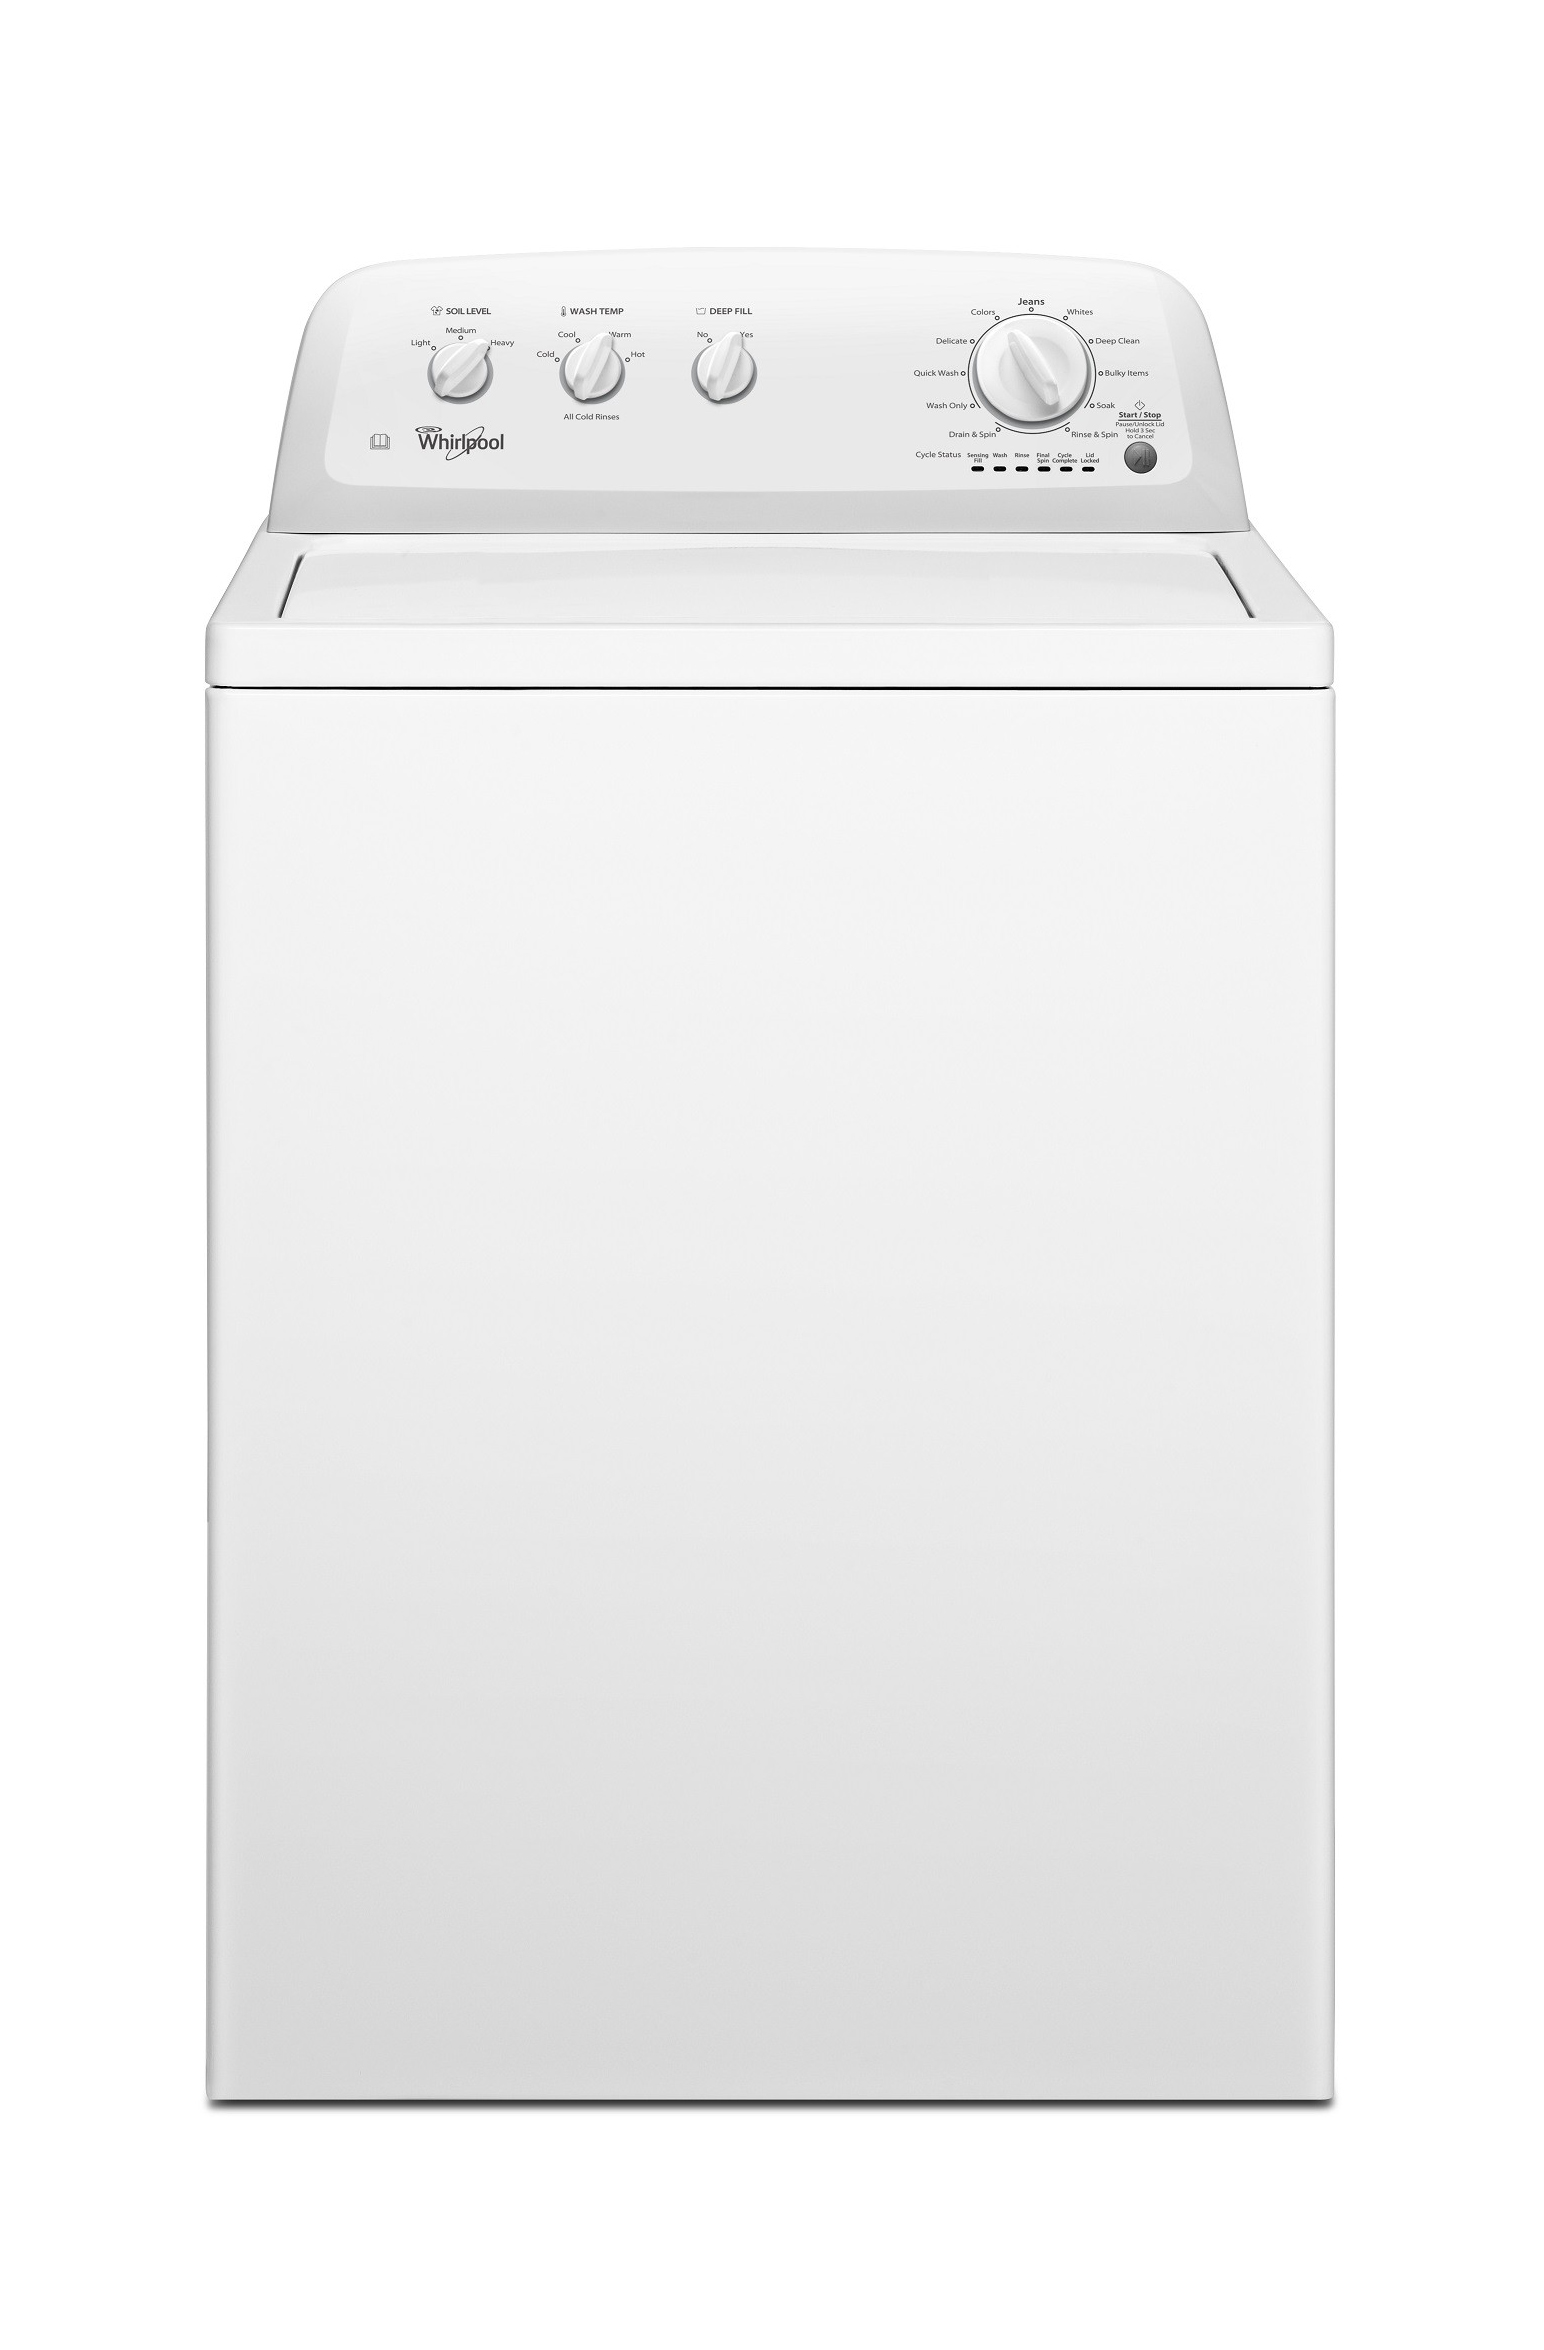 Top Loading American Washers & Dryers